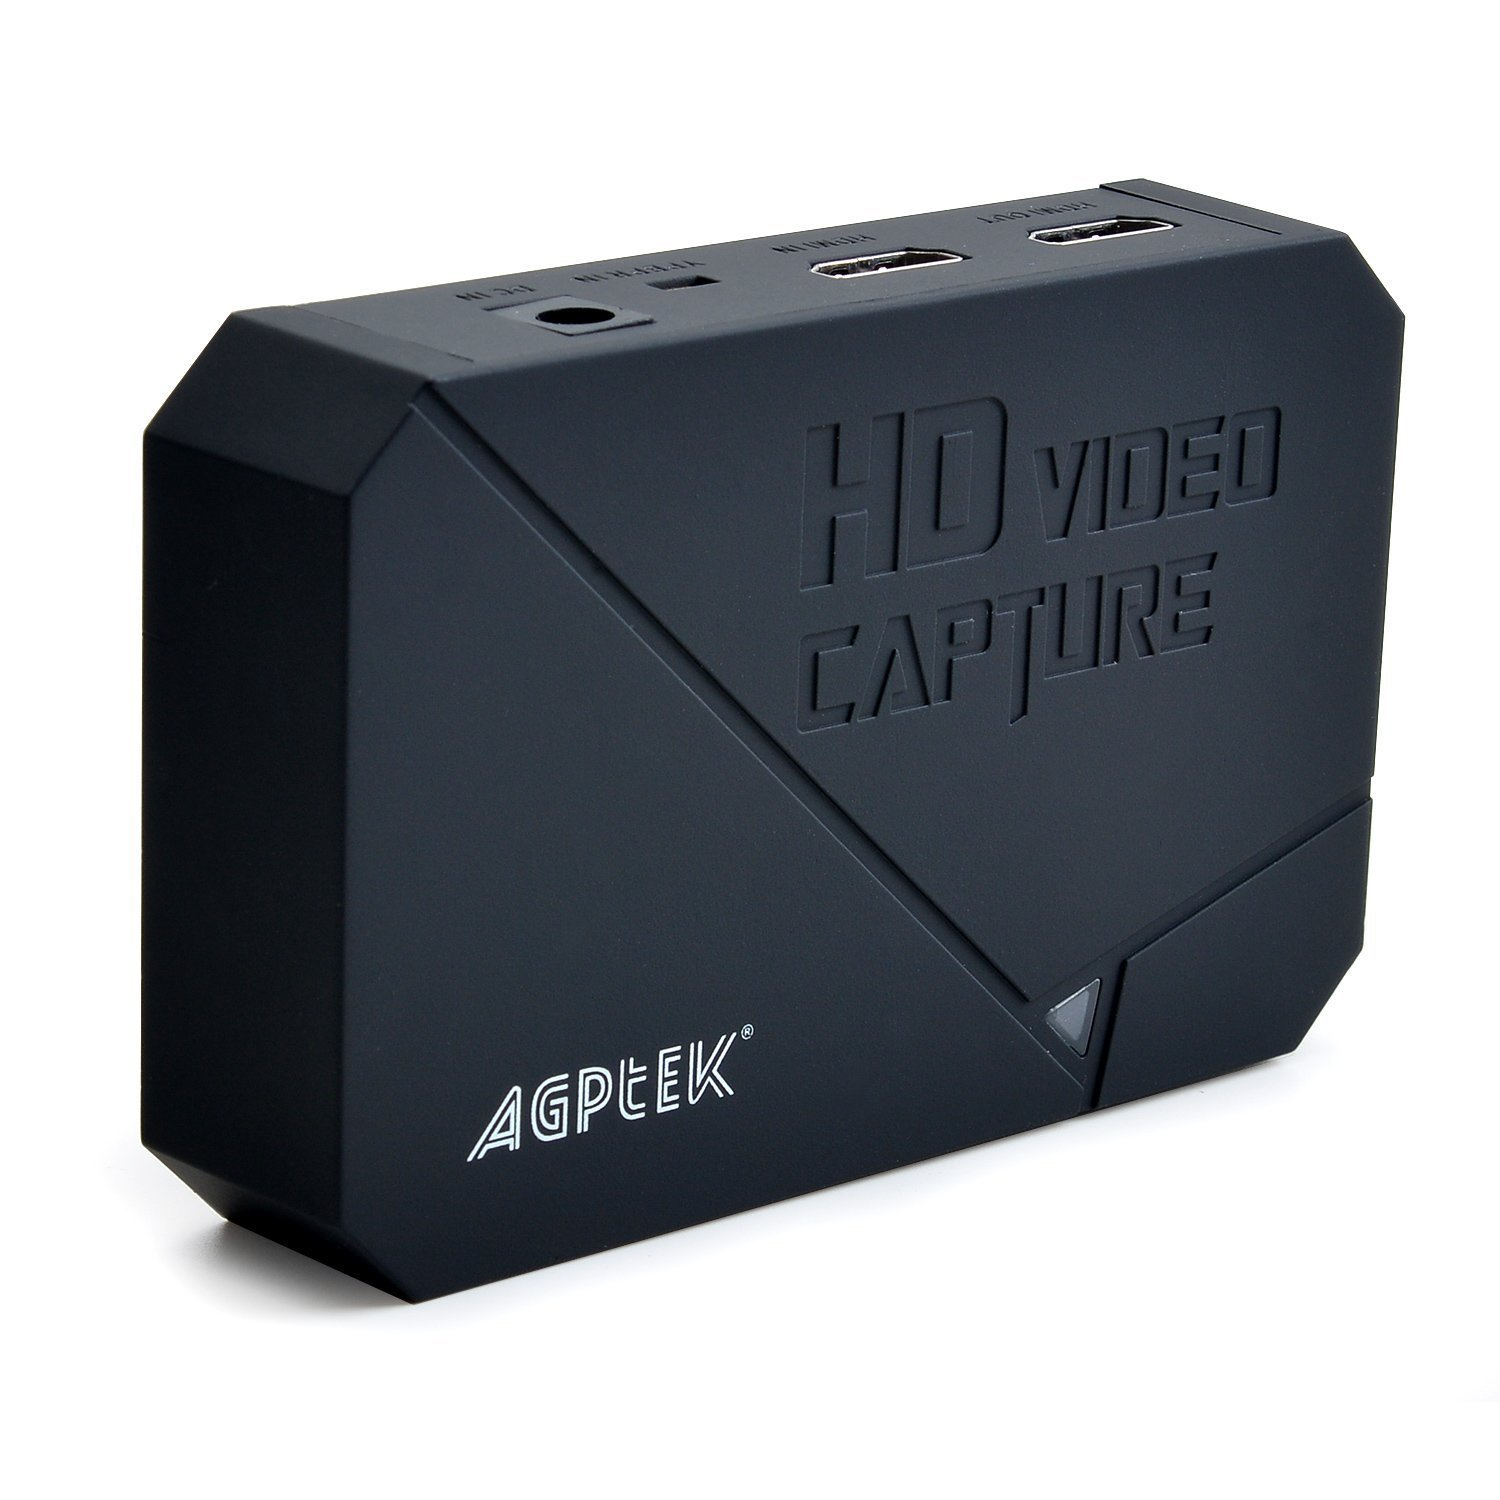 AGPtEK HD Game Capture video capture 1080P HDMI/YPBPR Recorder Xbox 360&One/ PS3 PS4,Support Mic in with both HDMI and YpbPr Input